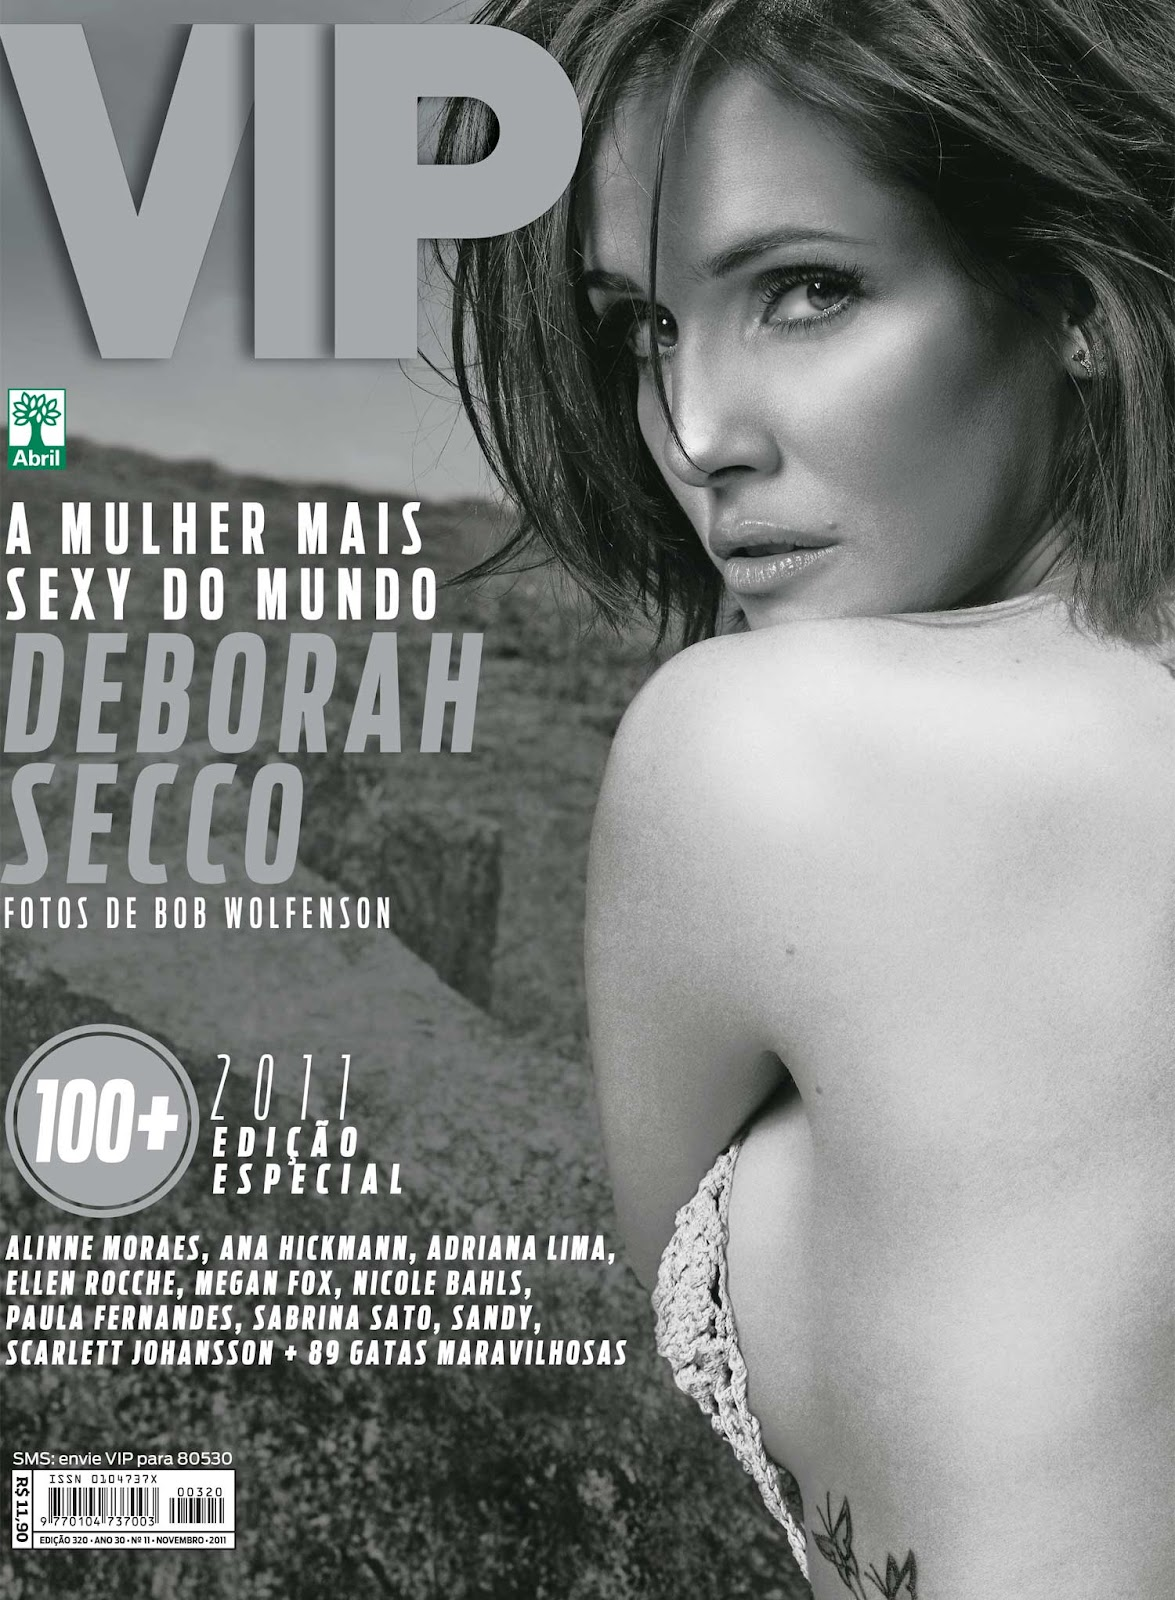 Remarkable, amusing Deborah secco hot really